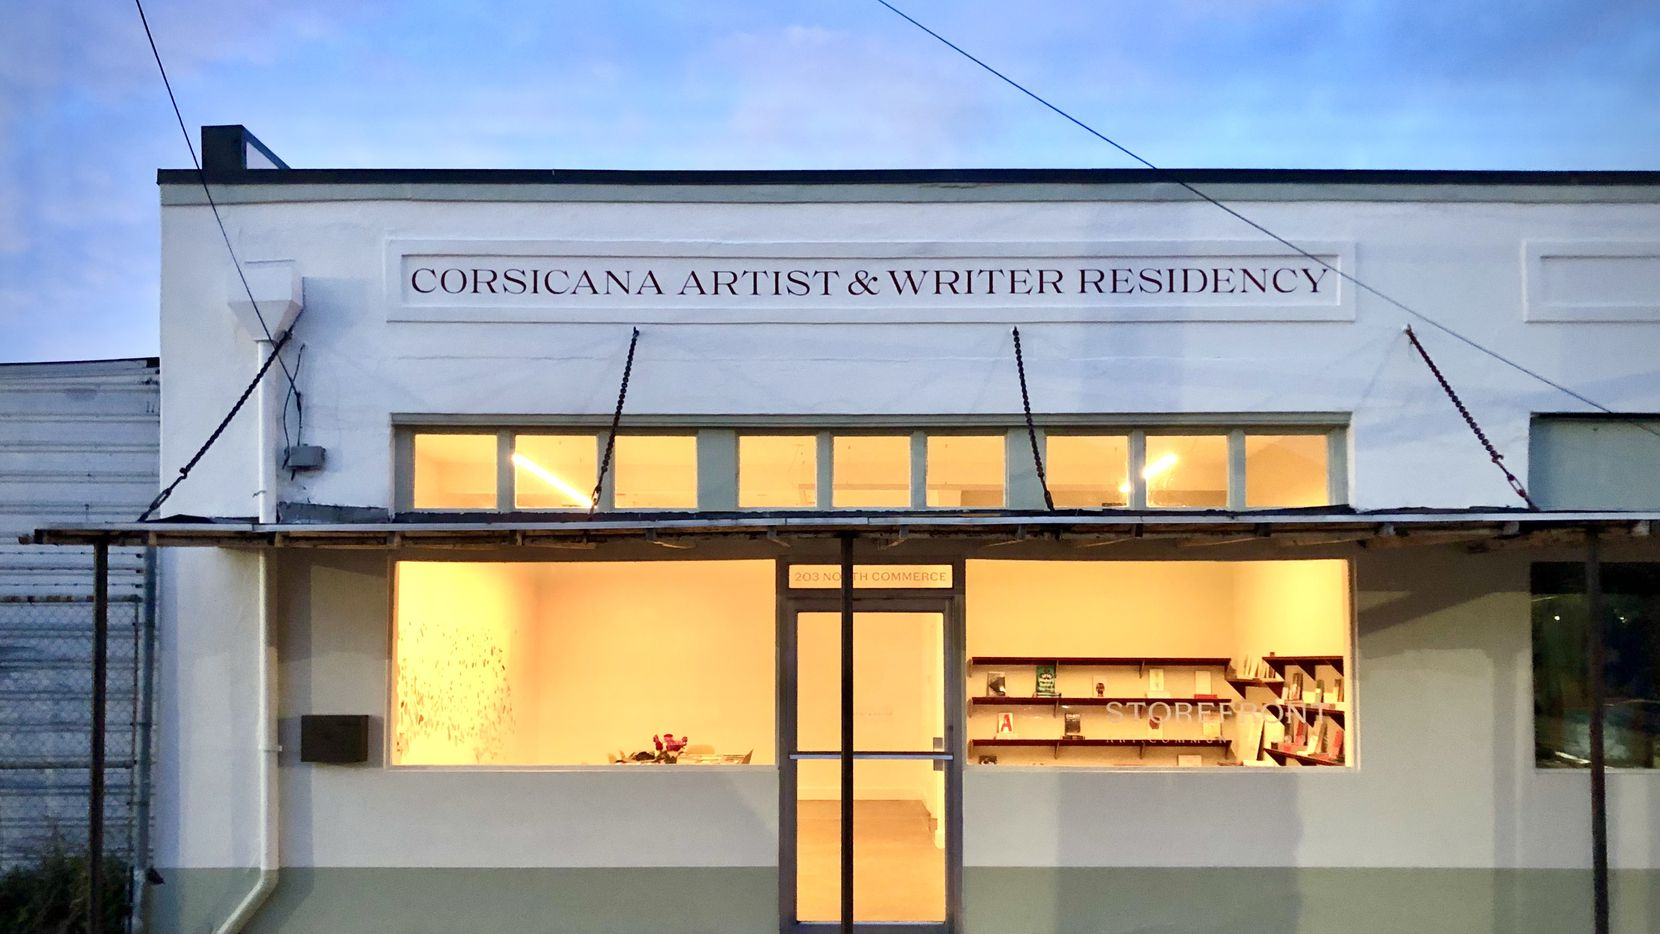 The Corsicana Artist & Writer Residency's bookstore is one of a few such independent bookstores that have appeared outside Dallas in past months.